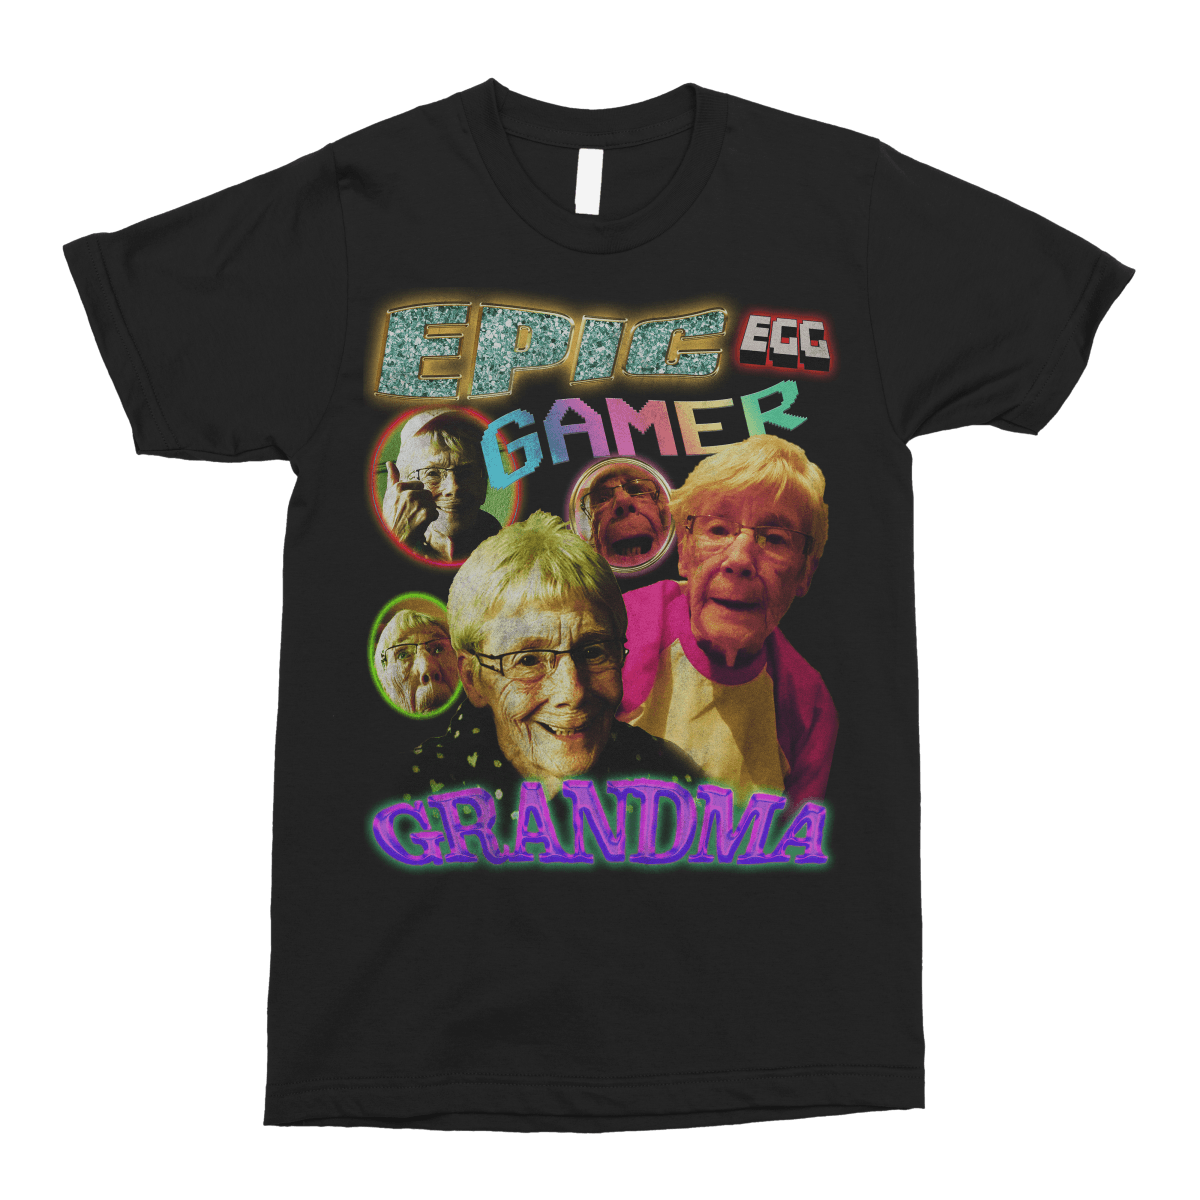 Epic Gamer Grandma - Vintage Bootleg Unisex T-Shirt - The Fresh Stuff